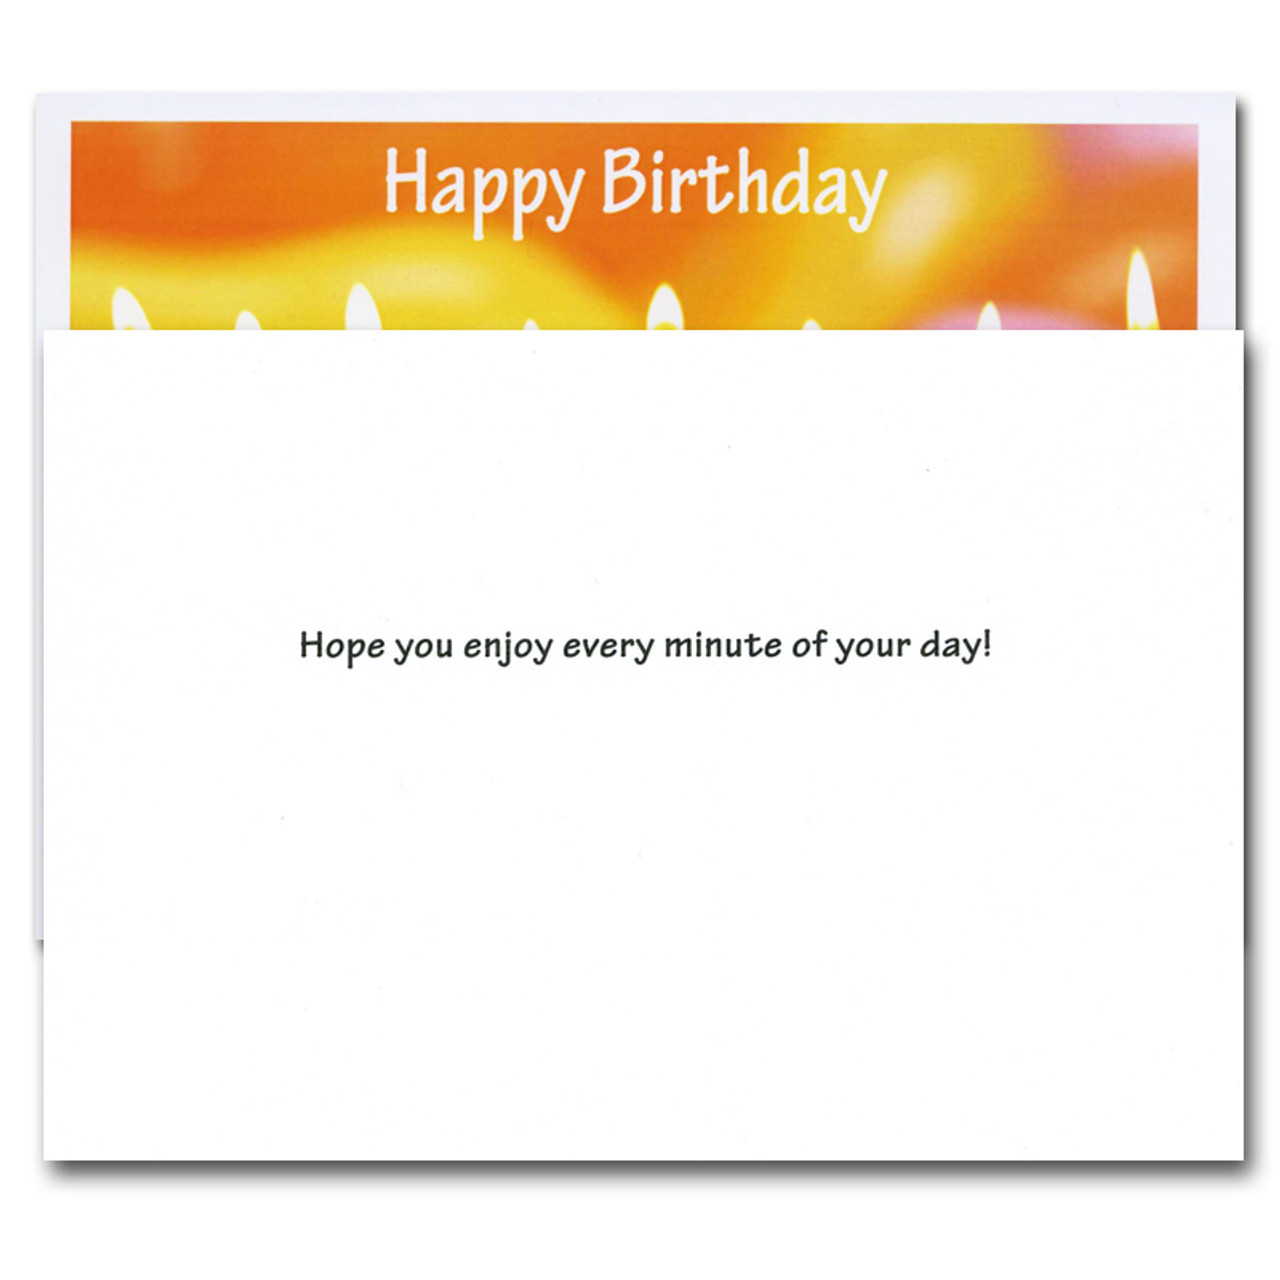 """Inside of business birthday card - Line Up. Greeting reads """"Hope you enjoy every minute of your day!"""""""